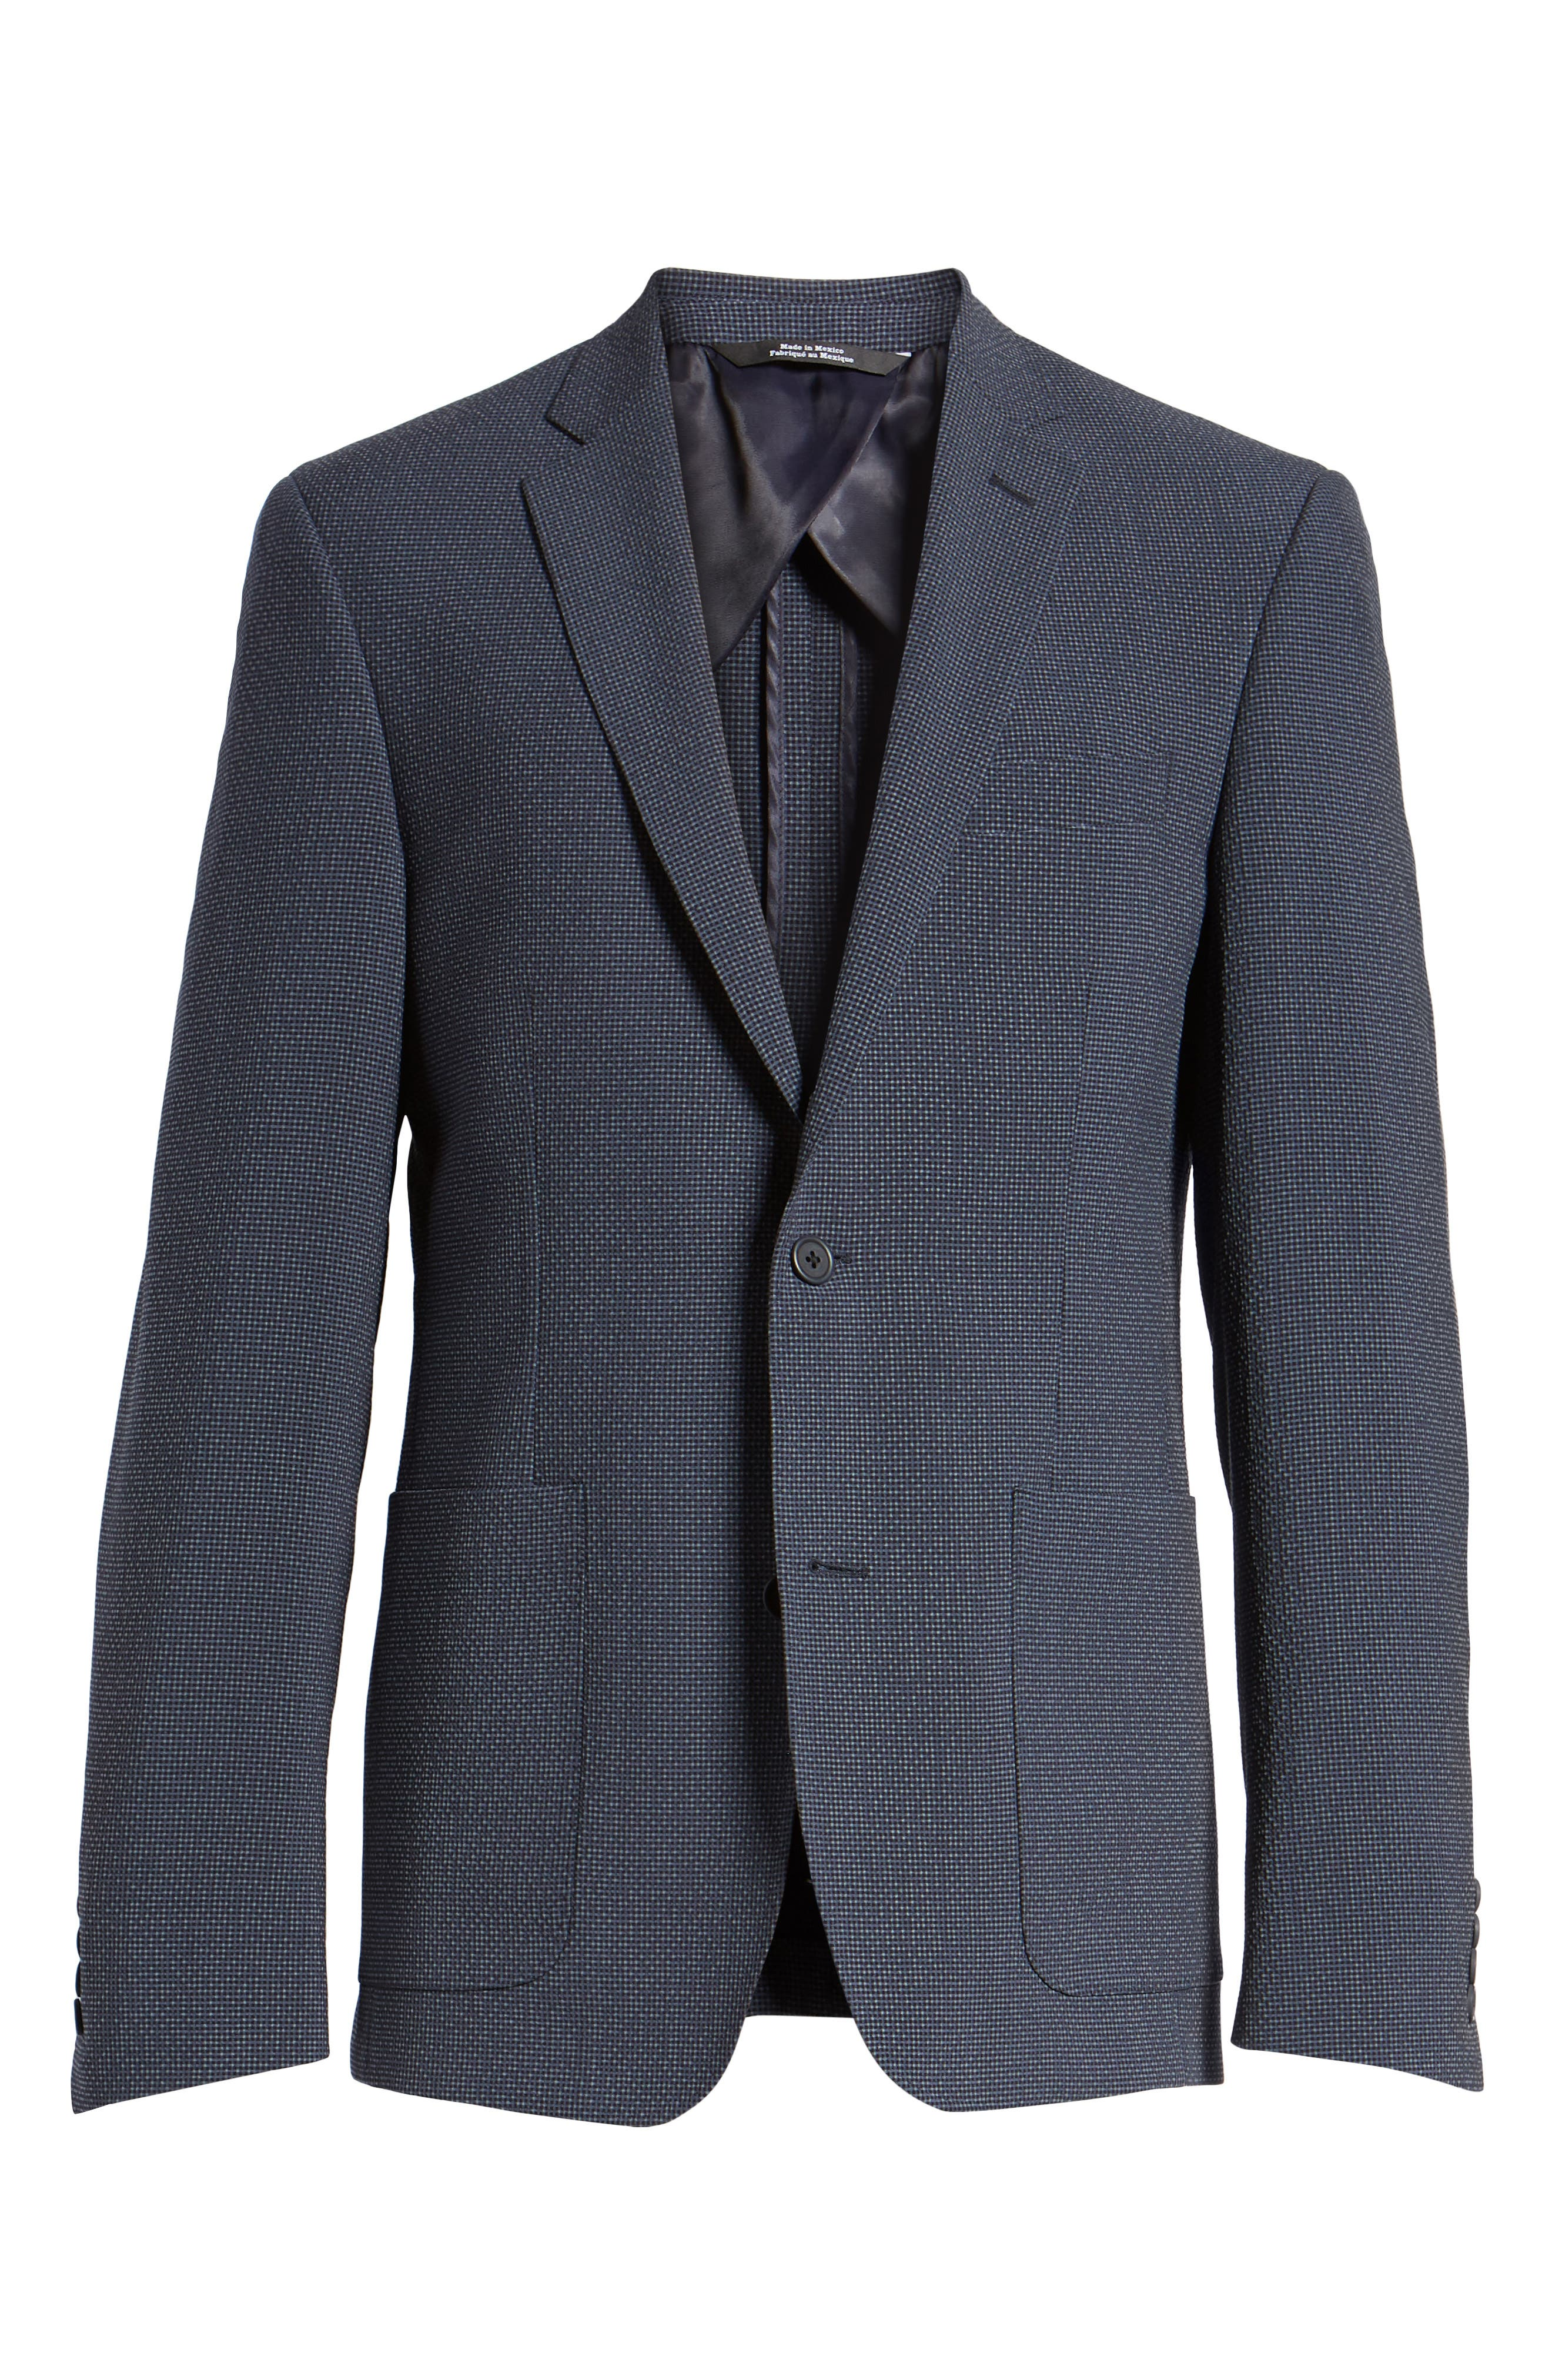 Trim Fit Seersucker Wool Blend Sport Coat,                             Alternate thumbnail 10, color,